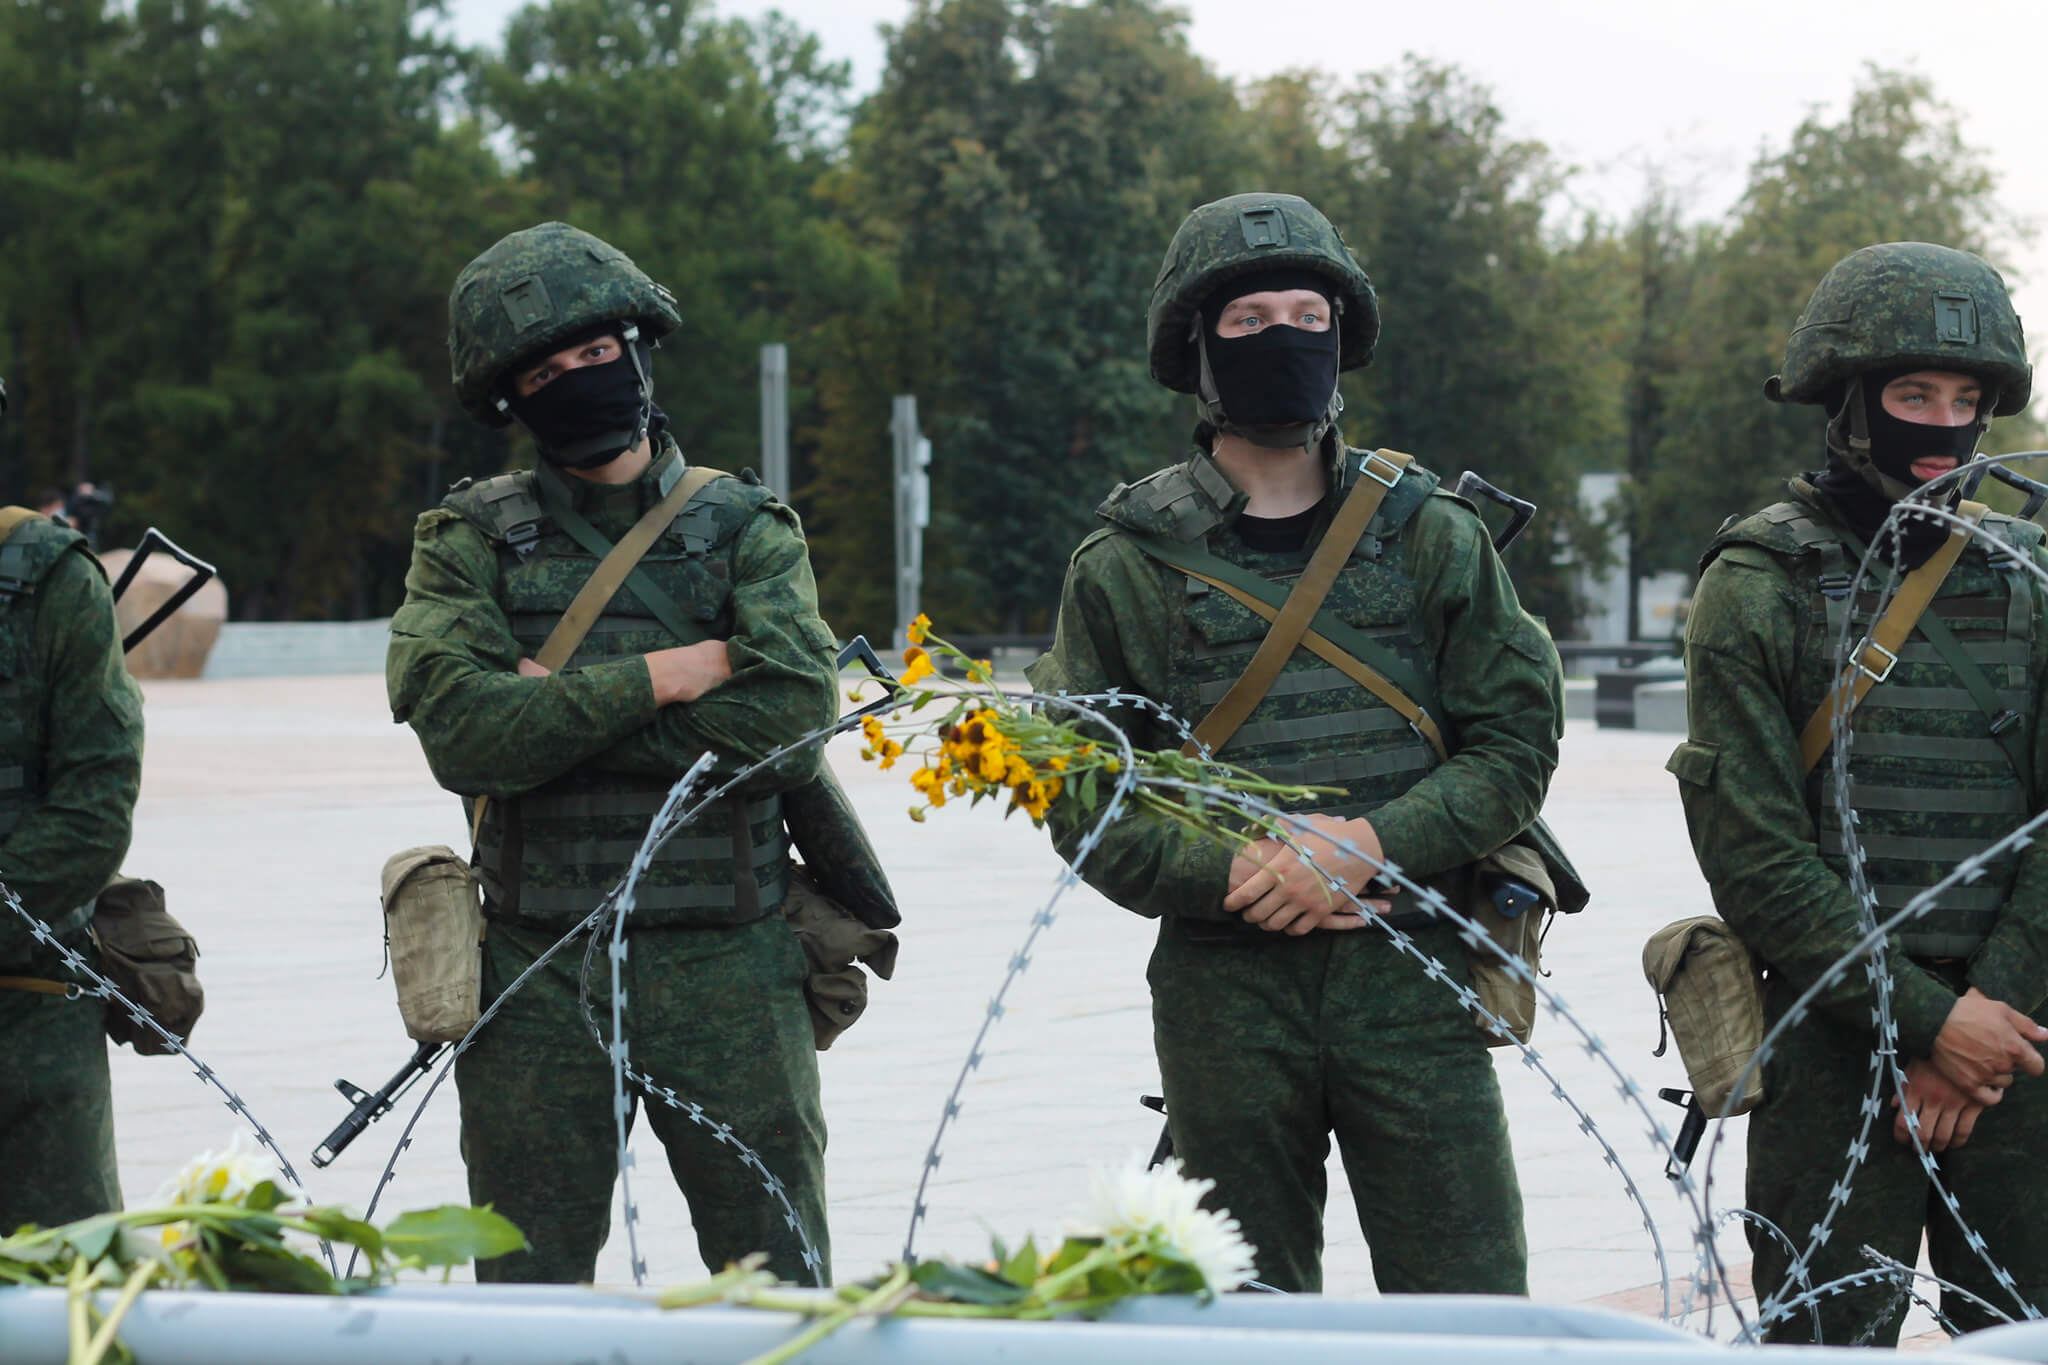 Belarussian soldiers during a protest rally in Minsk on August 30 2020. © Flicker / Natallia Rak